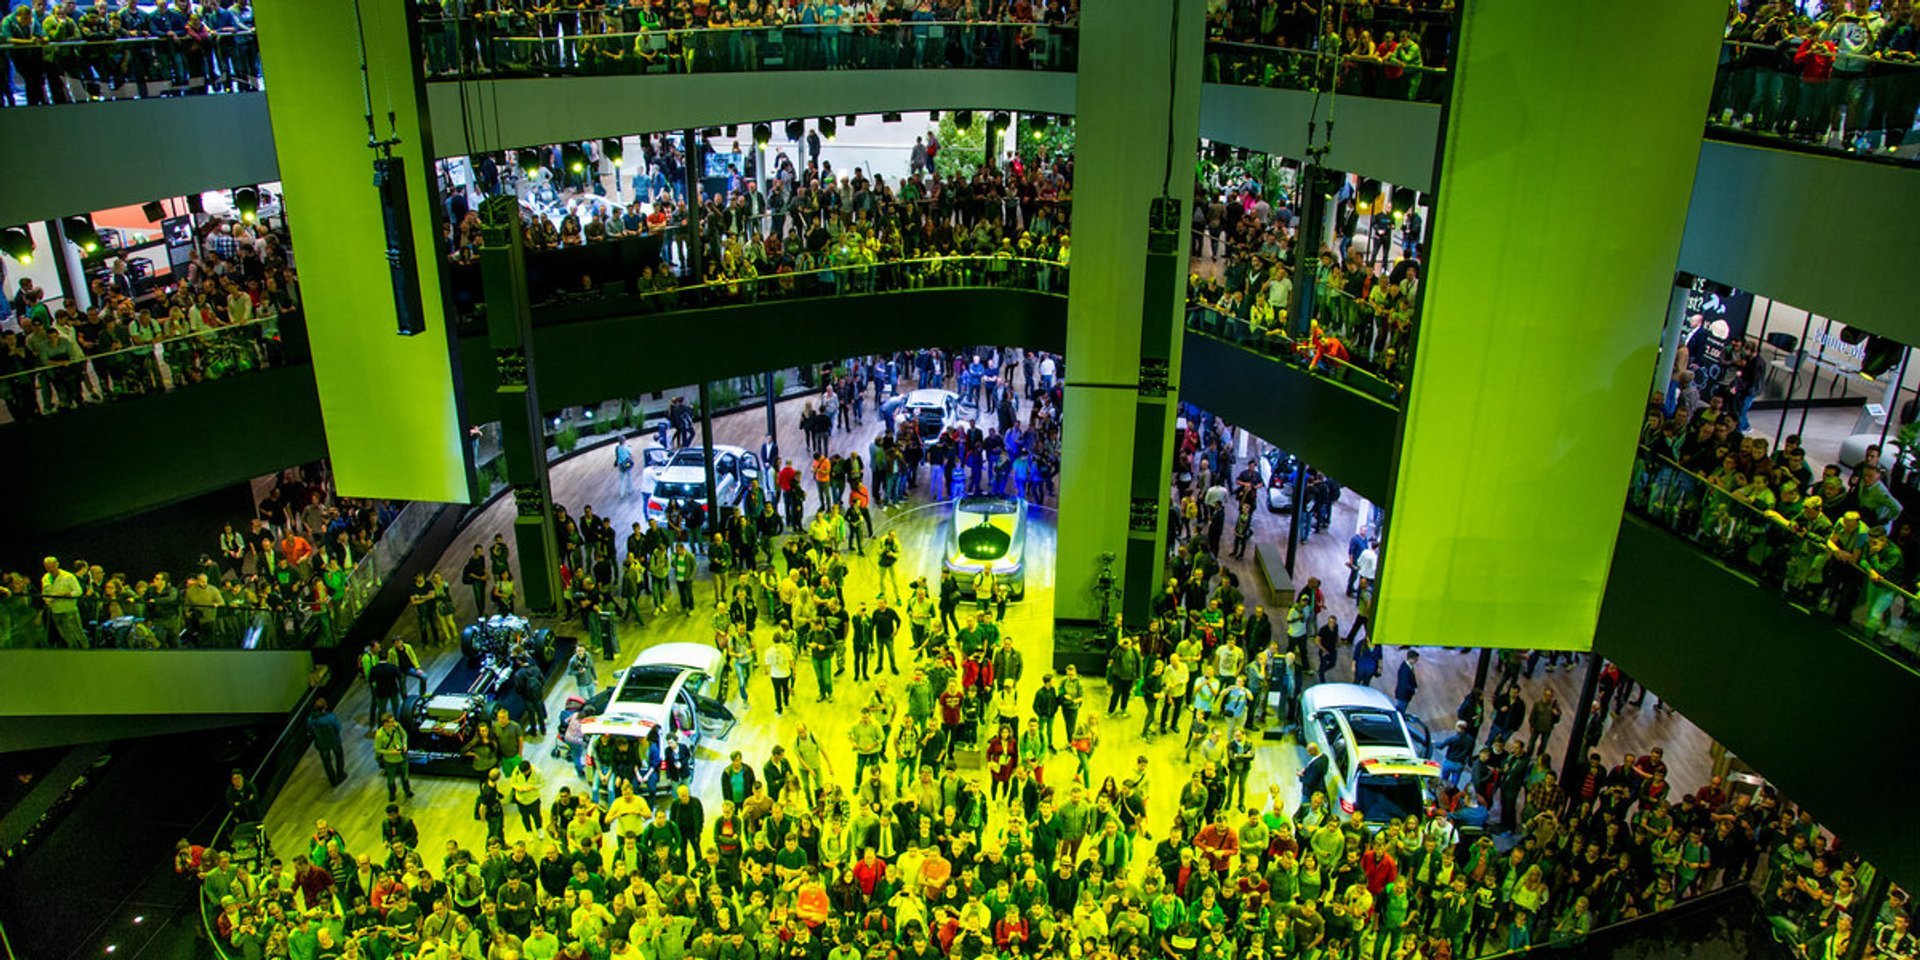 Frankfurt Auto Motor Show (IAA) in Frankfurt am Main - Best Season 2019